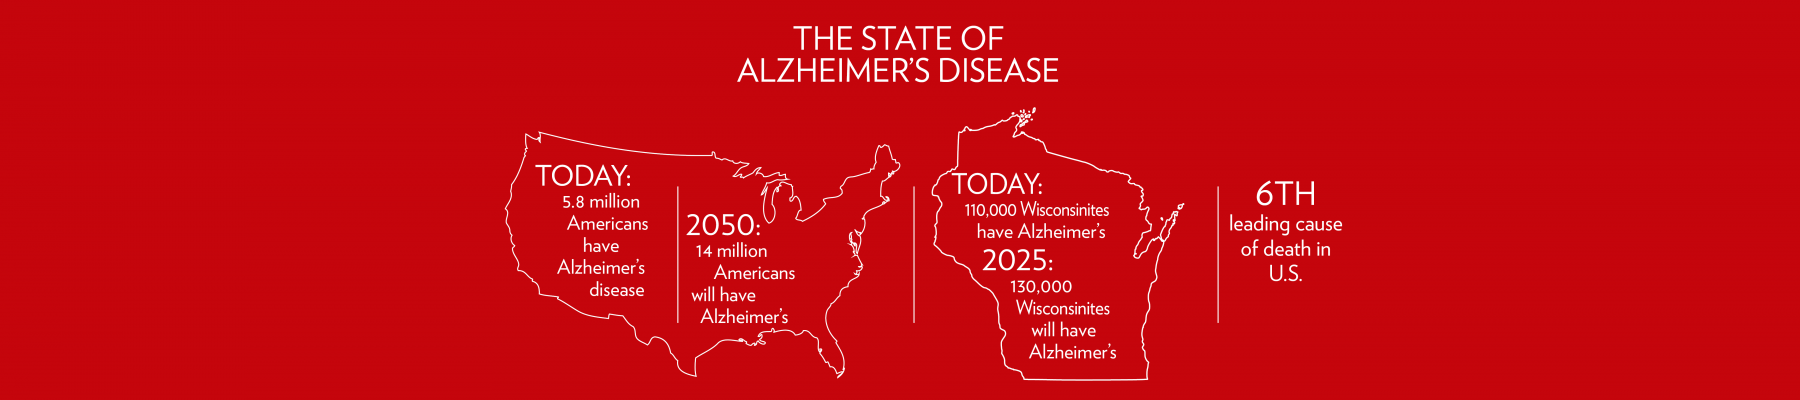 alz disease facts for U.S. and Wisconsin